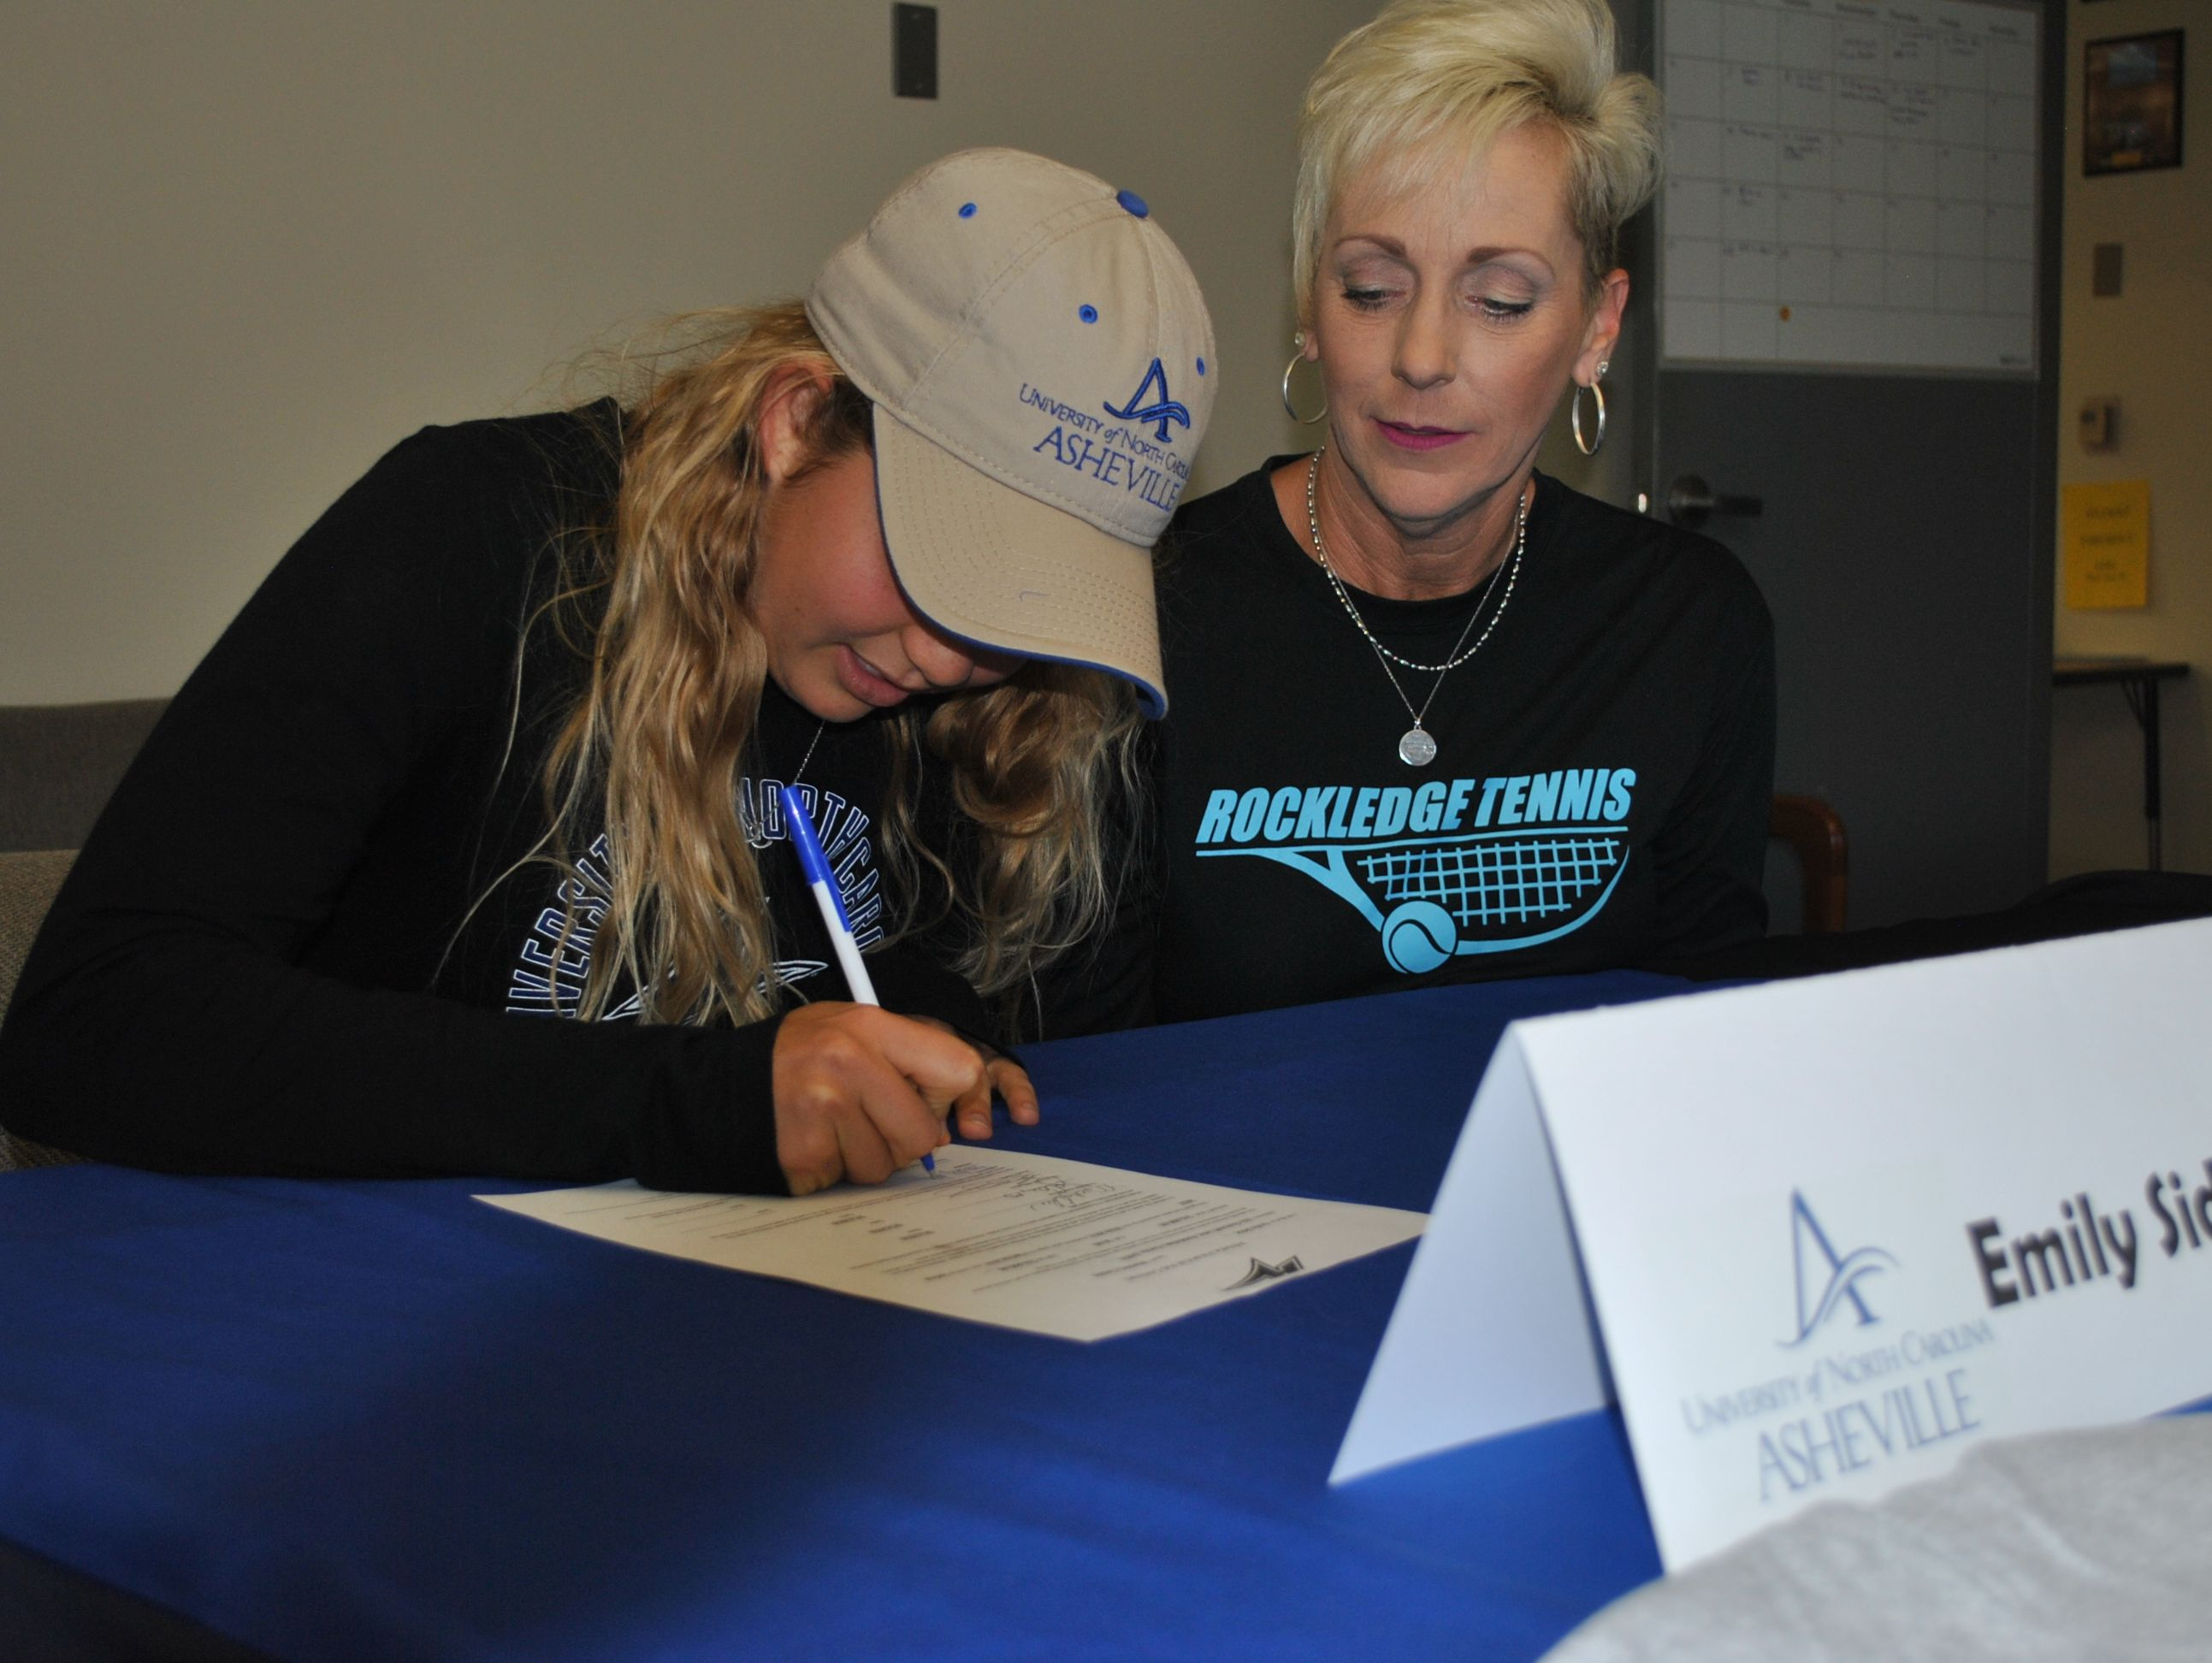 Emily Sidor of Rockledge tennis signed with UNC-Asheville on Thursday. Photo by Leslie Shinault